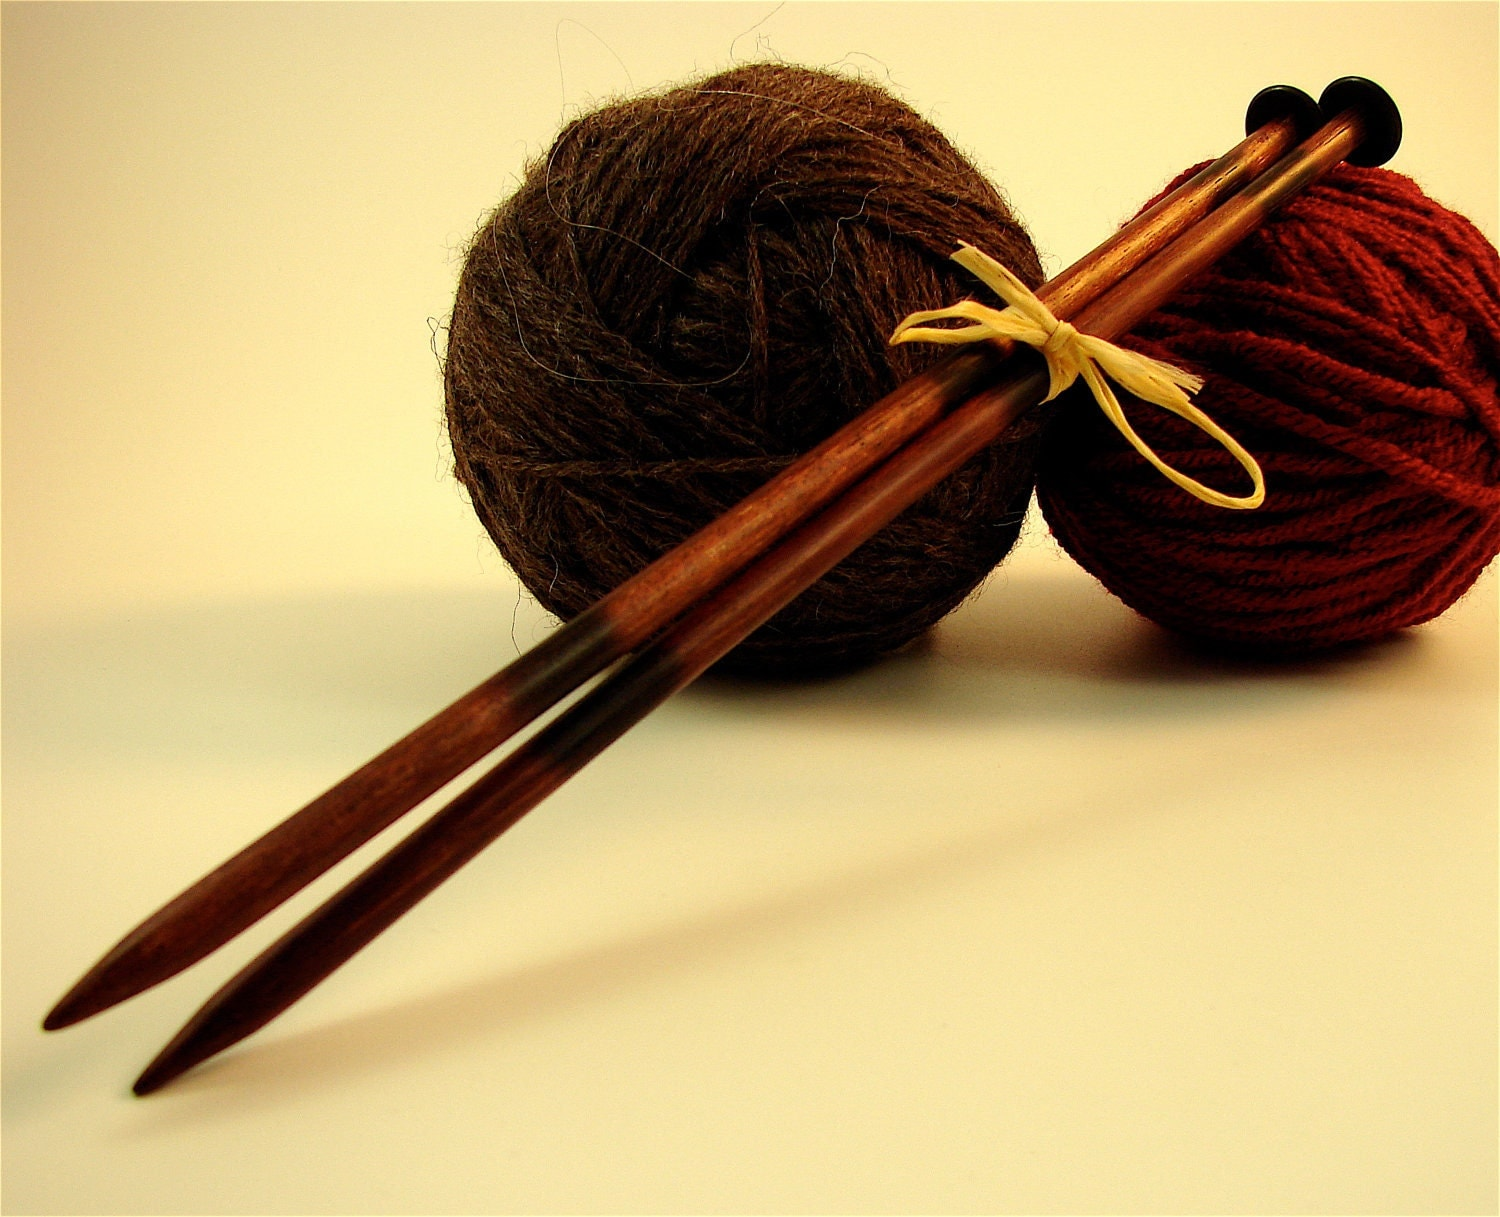 Hand Carved Wooden Knitting Needles Size By Wallingandsons